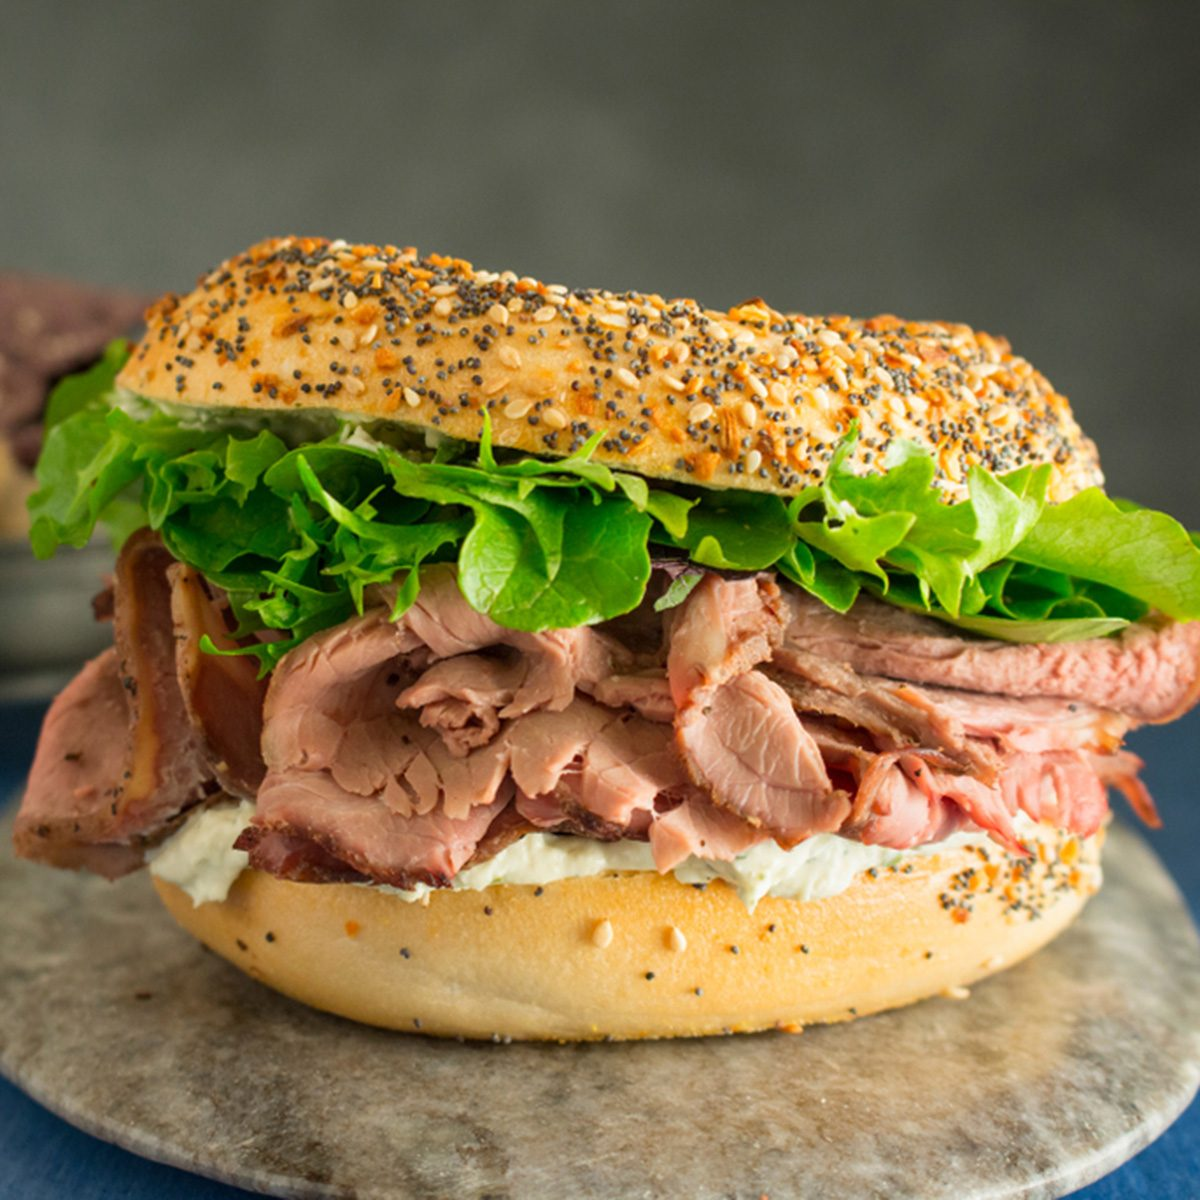 Roast beef sandwich with lettuce on an everything bagel with a side of blue corn chips